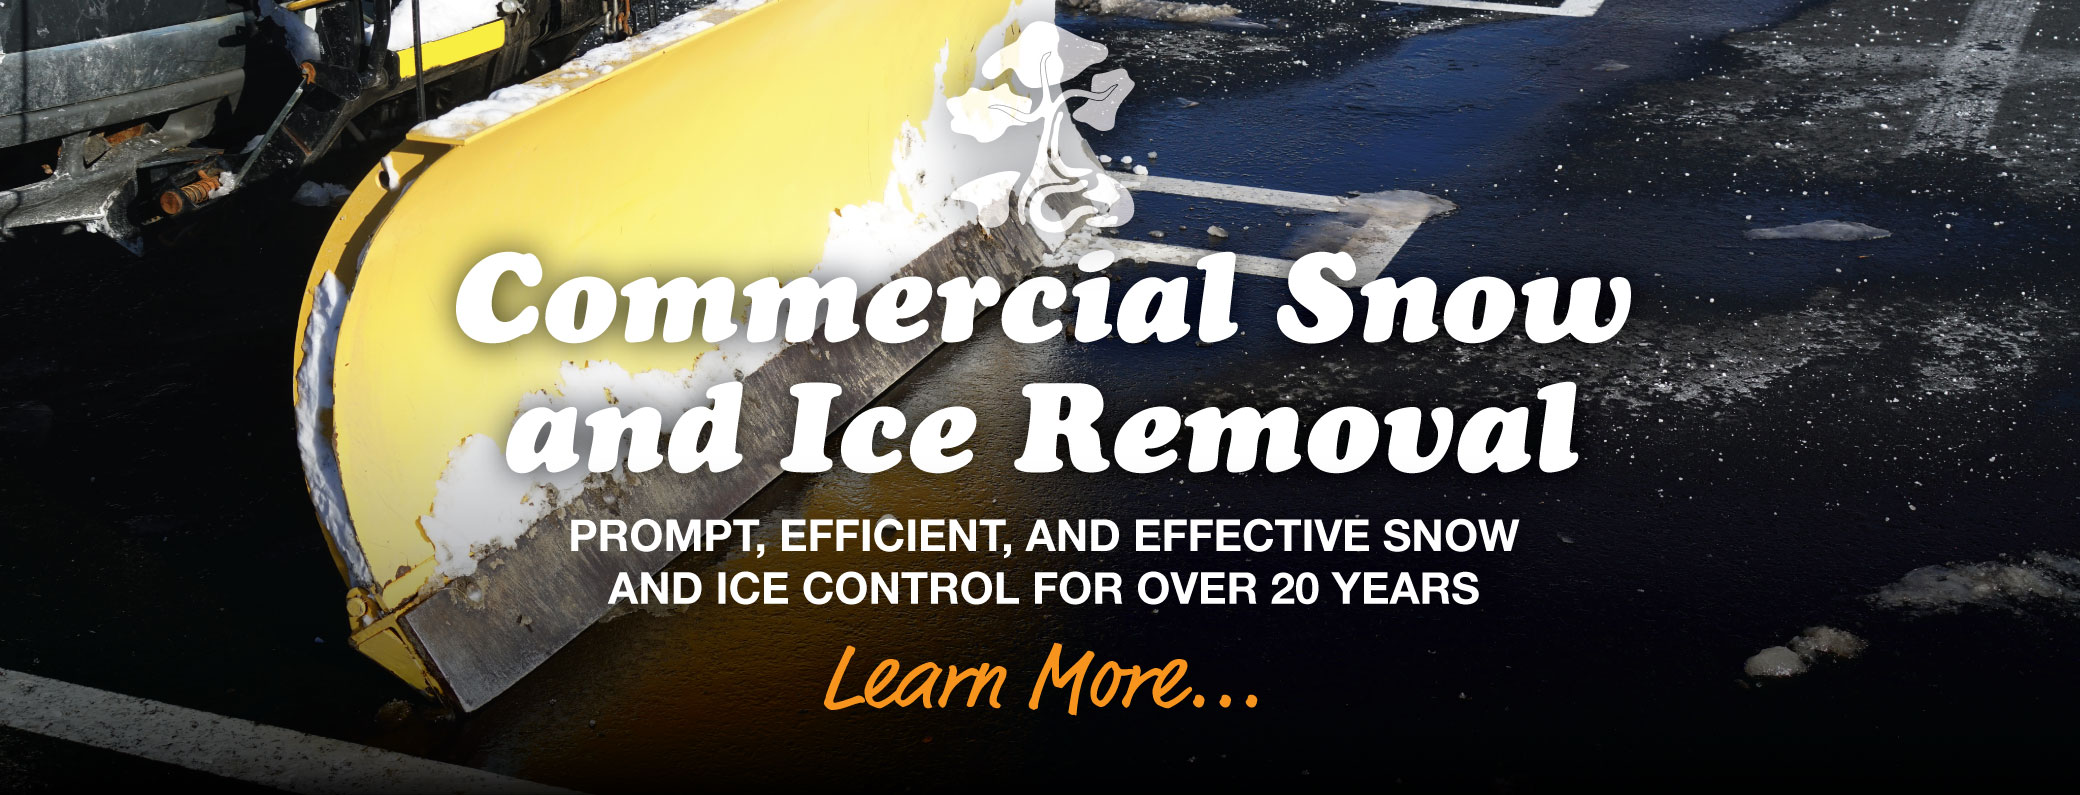 Commercial Snow and Ice Removal Slide